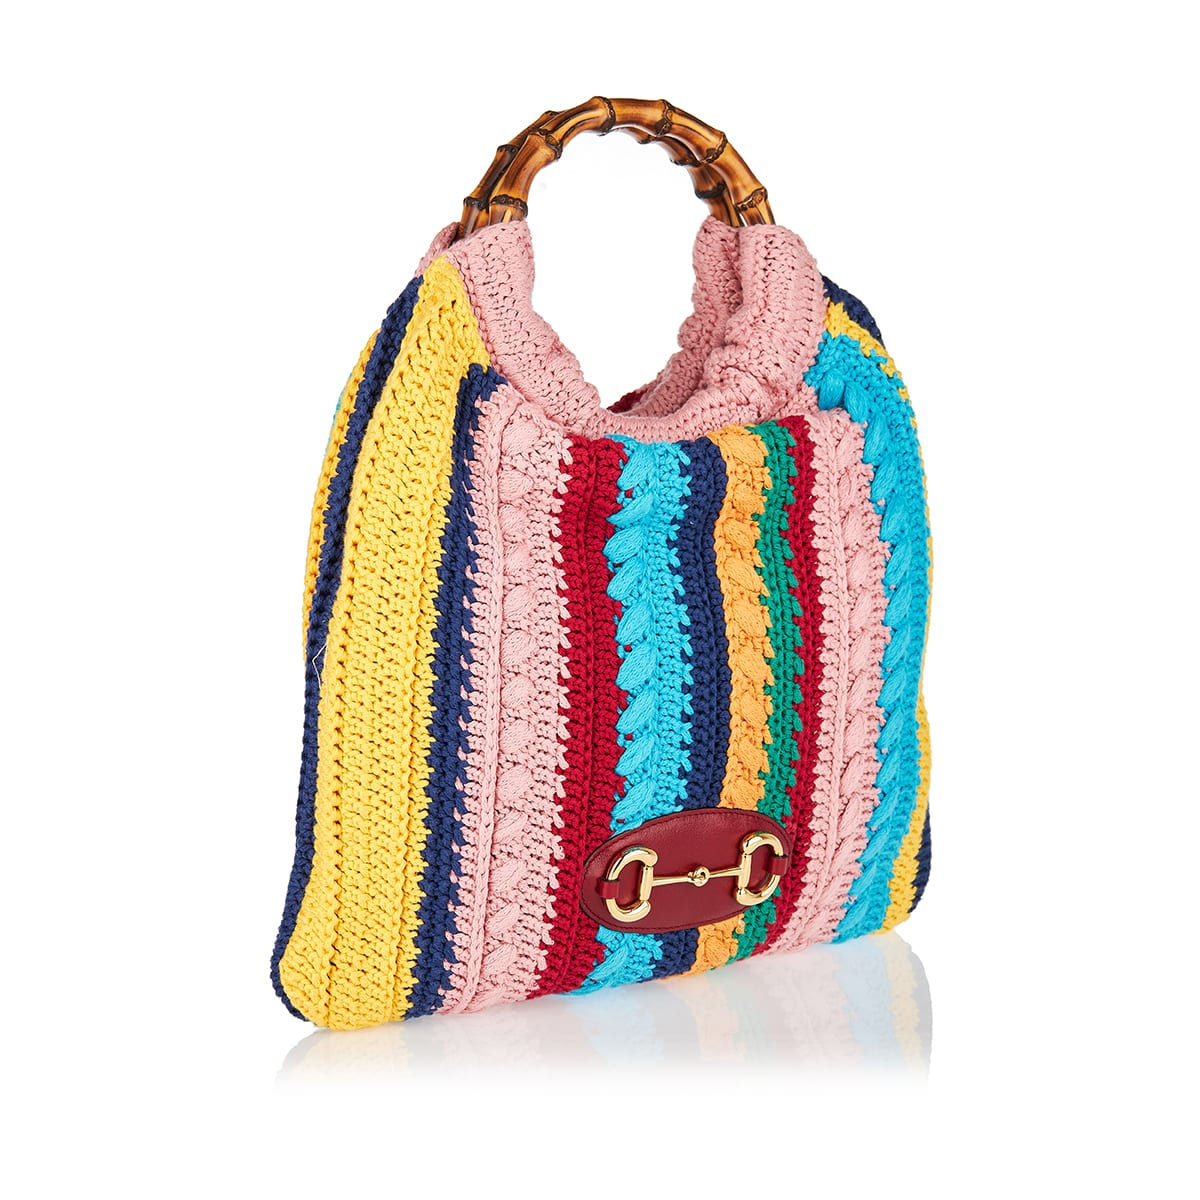 Horsebit 1955 striped crochet tote